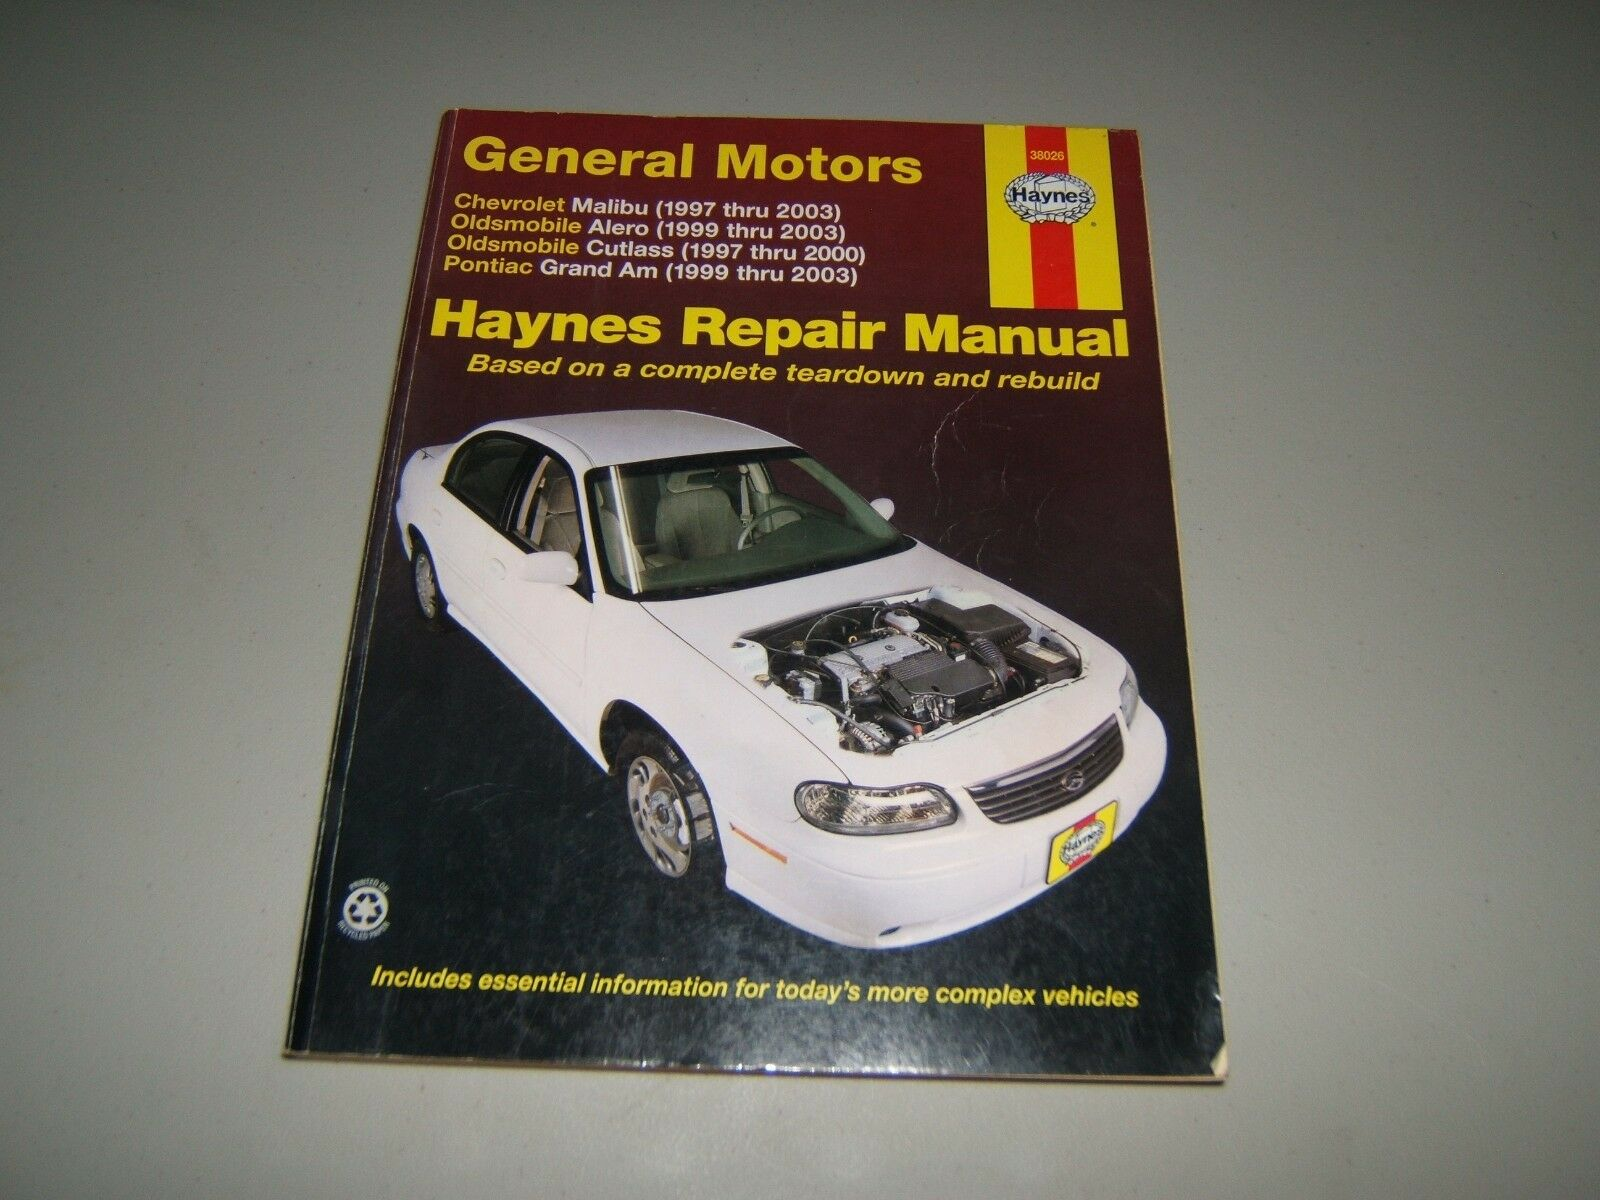 Chevrolet Malibu Alero Cutlass Grand Am Haynes Repair Manual 1997 Thru 2003  | eBay